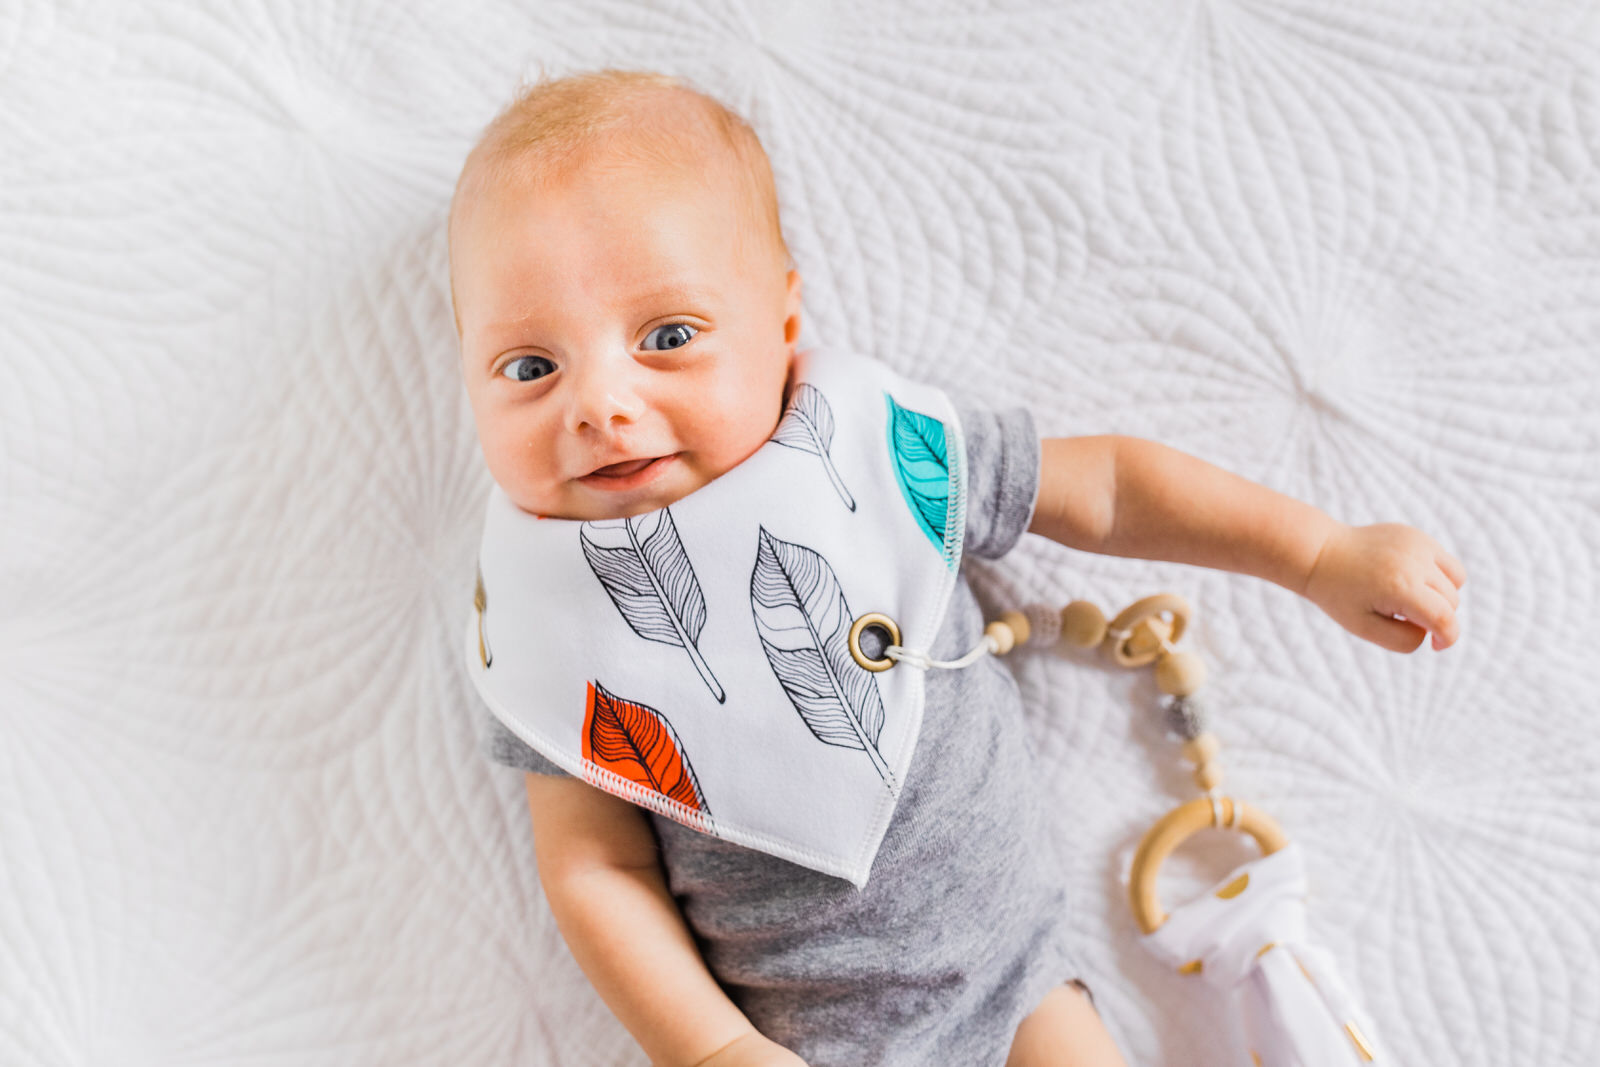 kids-clothes-small-business-baby-newborn-collaboration-7583.jpg